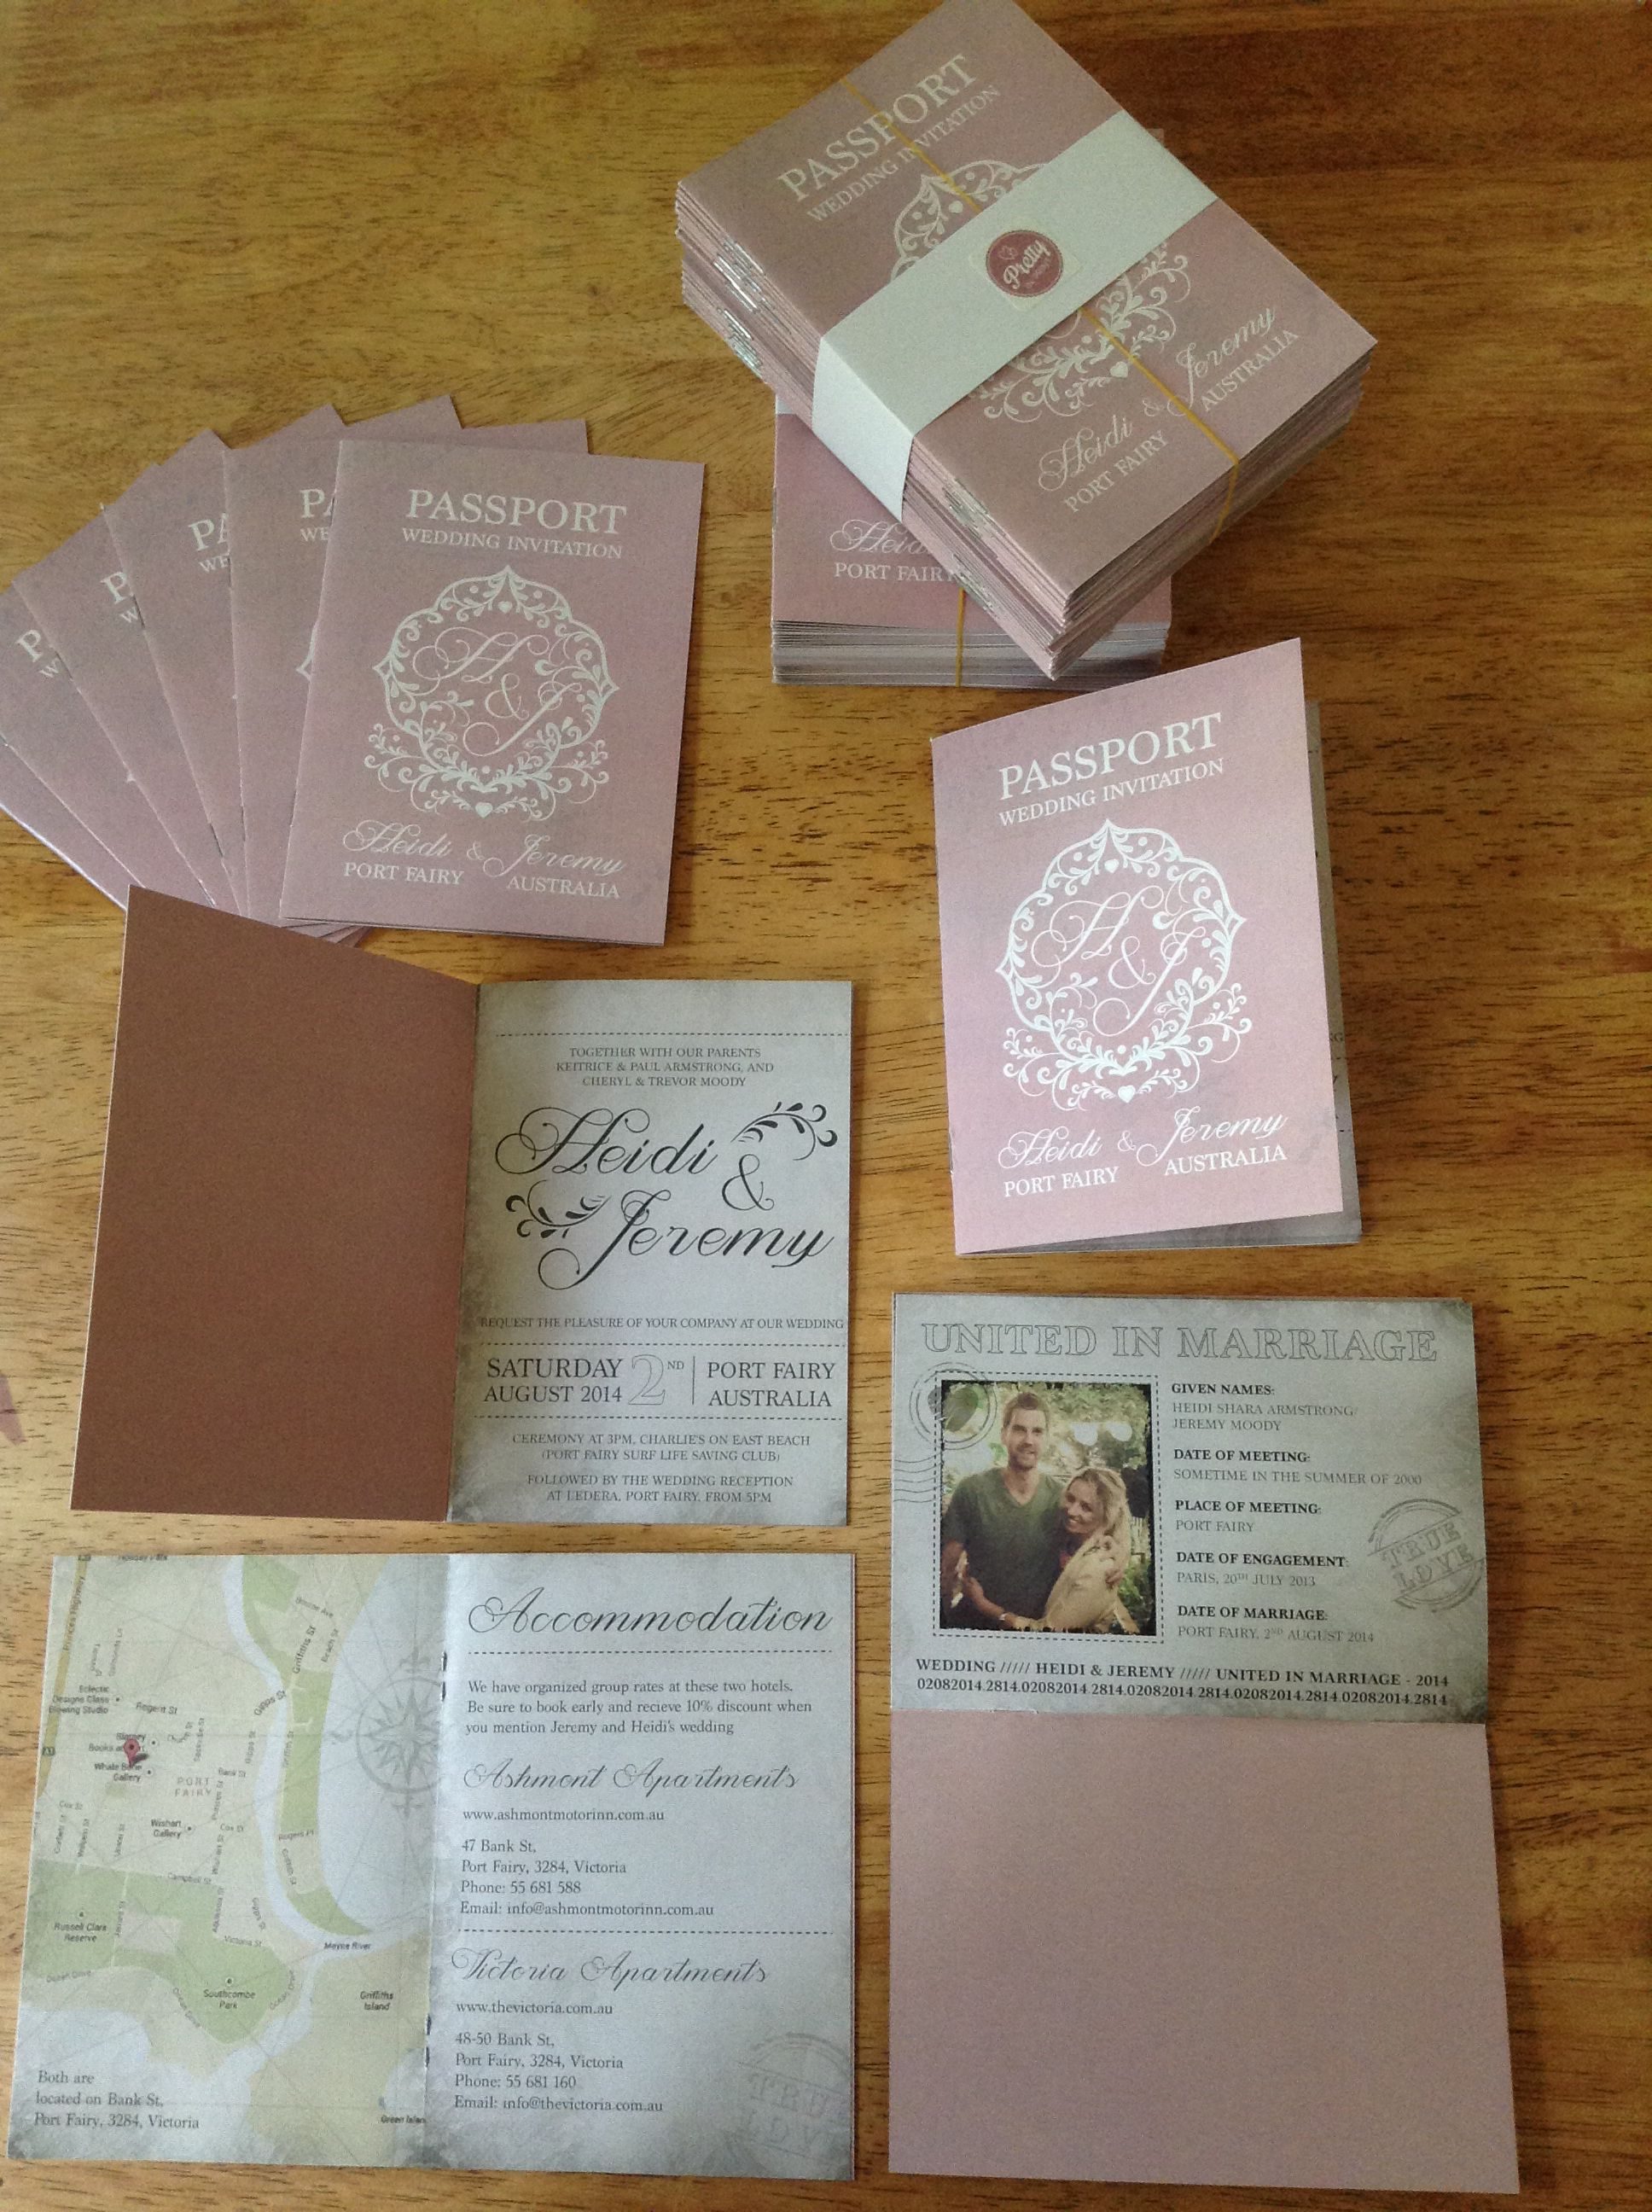 Passport Wedding Invitation Booklets With A Logo Of The Bride